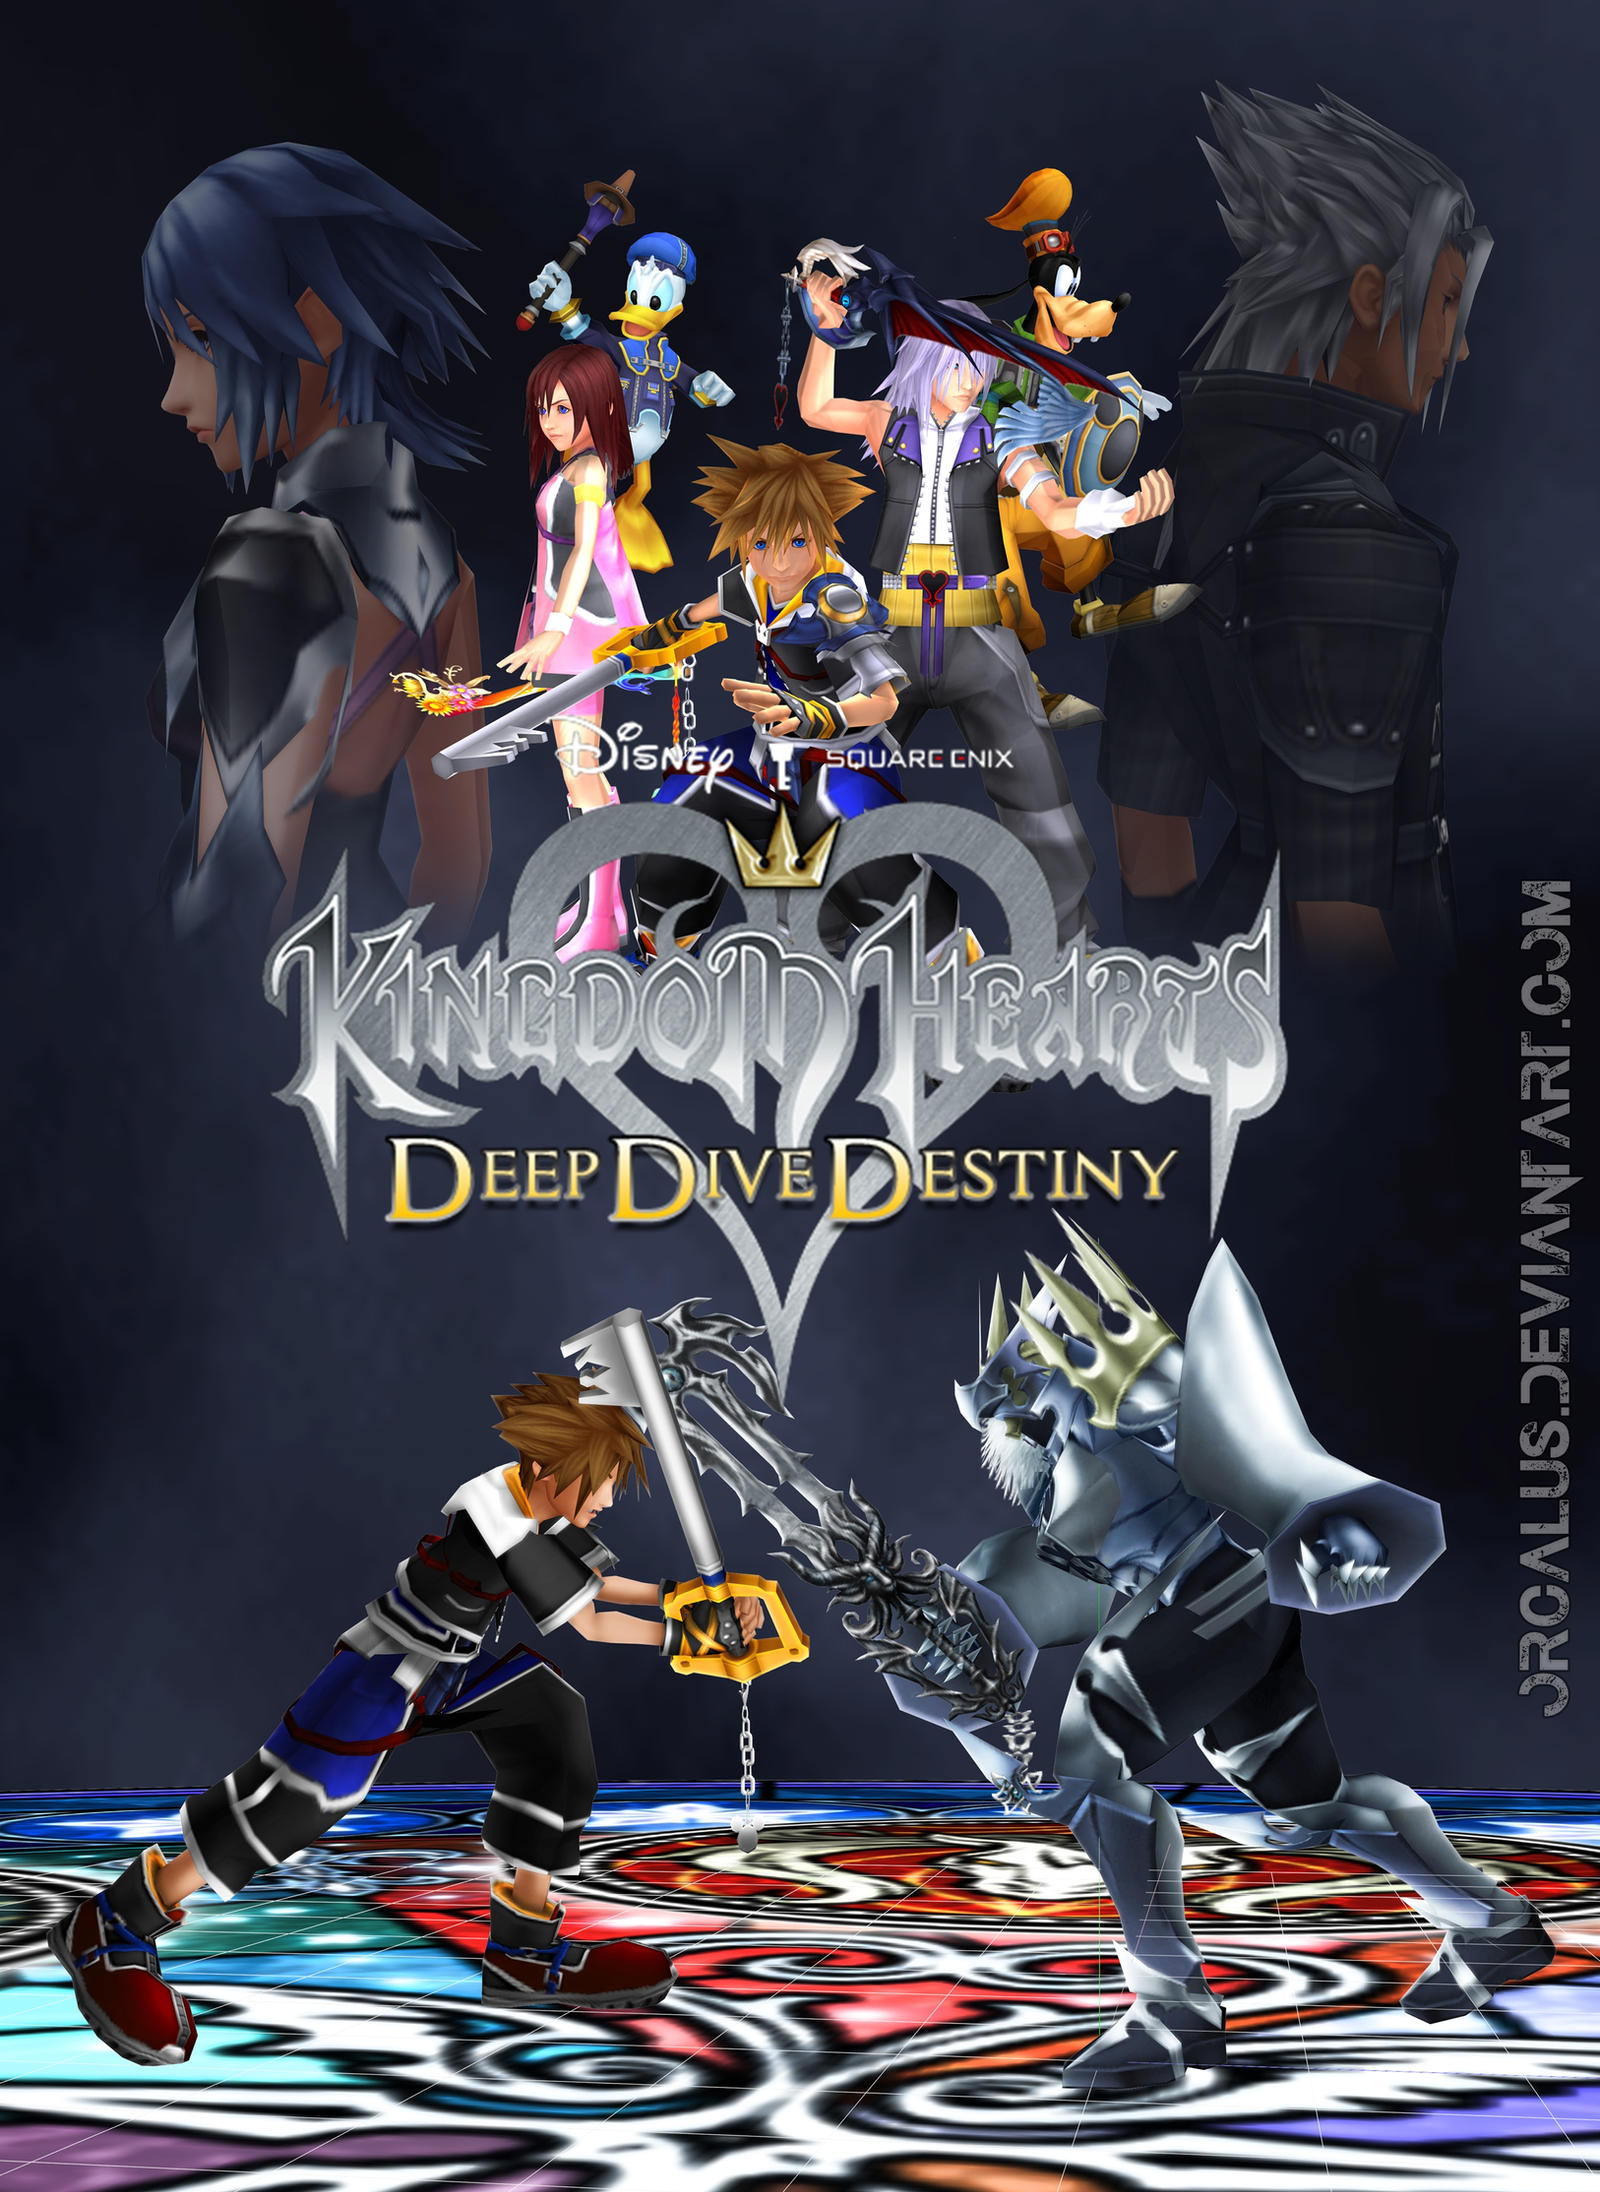 Kingdom hearts deep dive destiny by orcalus on deviantart - Kingdom hearts deep dive ...